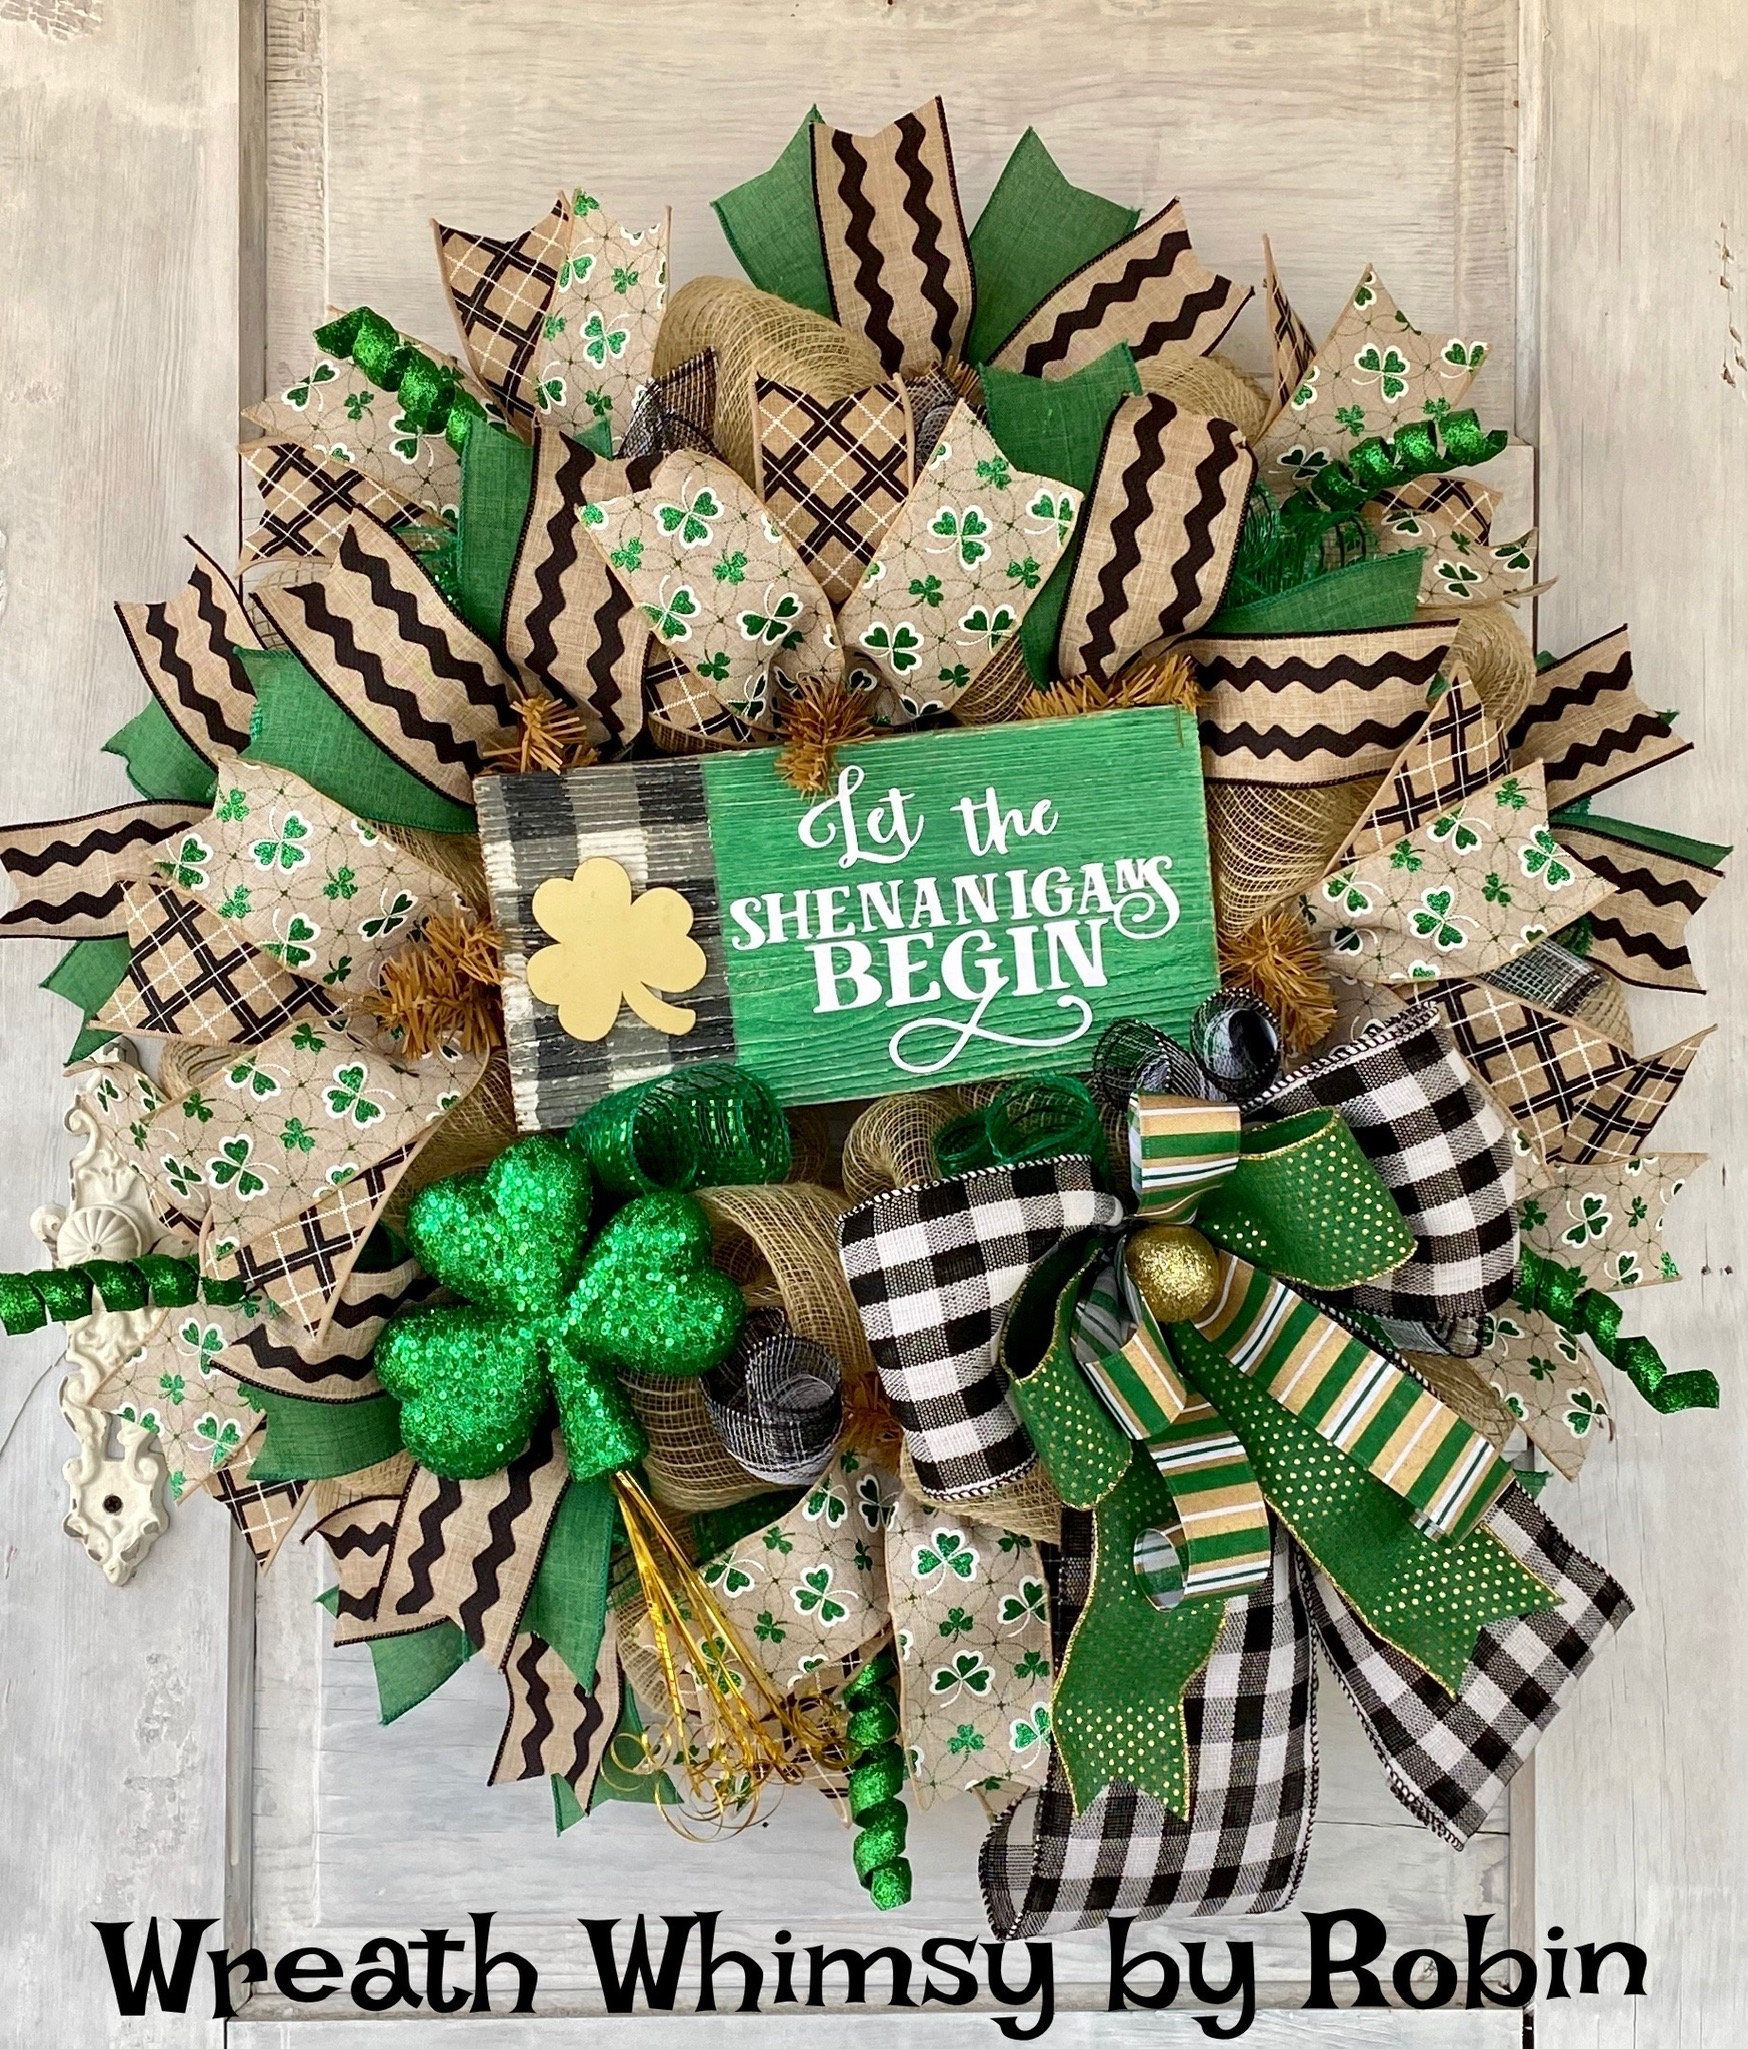 Saint Patrick's Day Wreath, Door Wreath, Irish Wreath, St